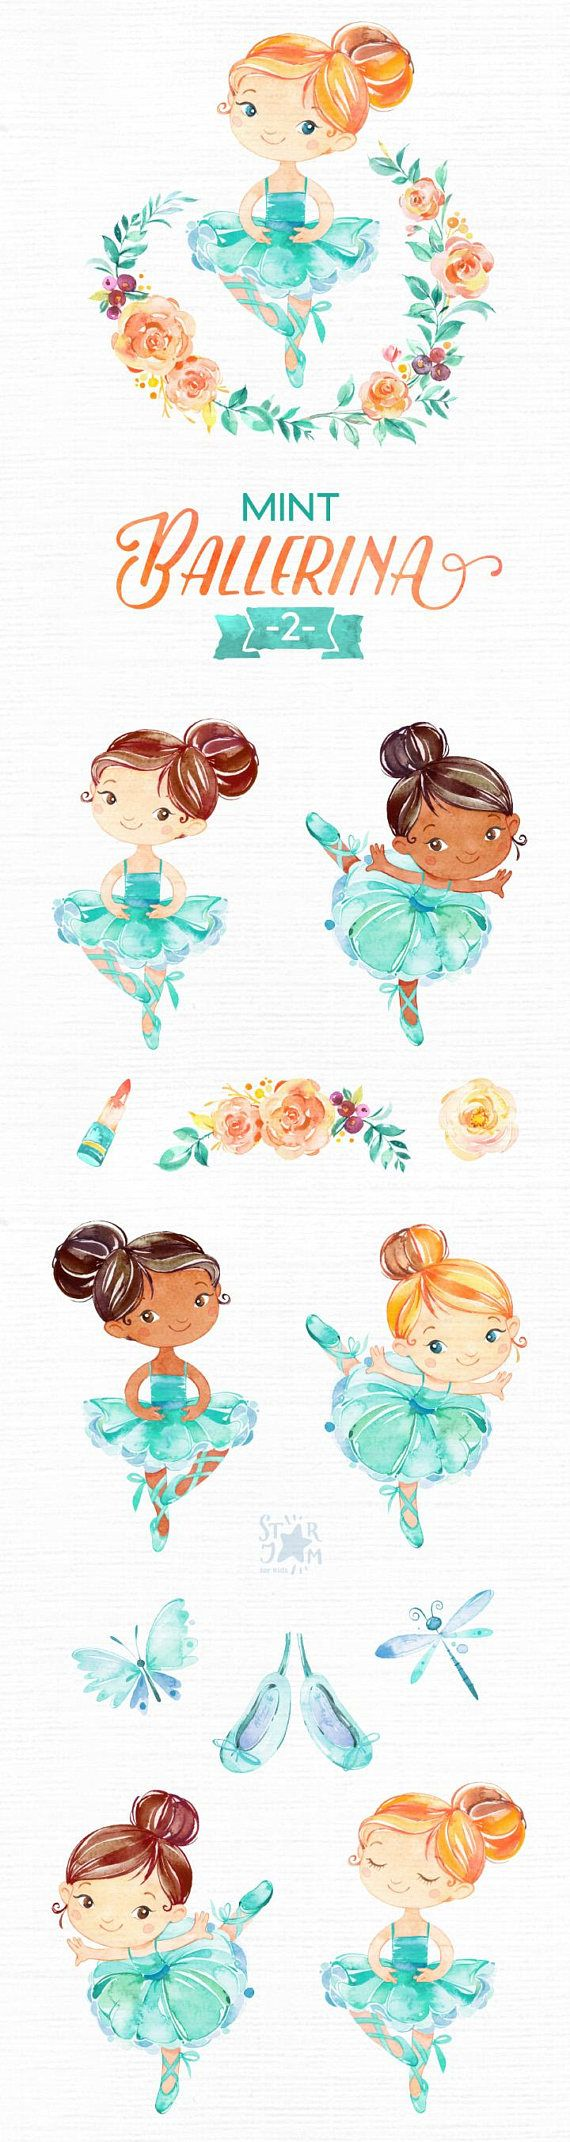 This Mint Ballerina 2 watercolor set is just what you needed for the perfect invitations, craft projects, paper products, party decorations, printable, greetings cards, posters, stationery, scrapbooking, stickers, t-shirts, baby clothes, web designs and much more.  :::::: DETAILS